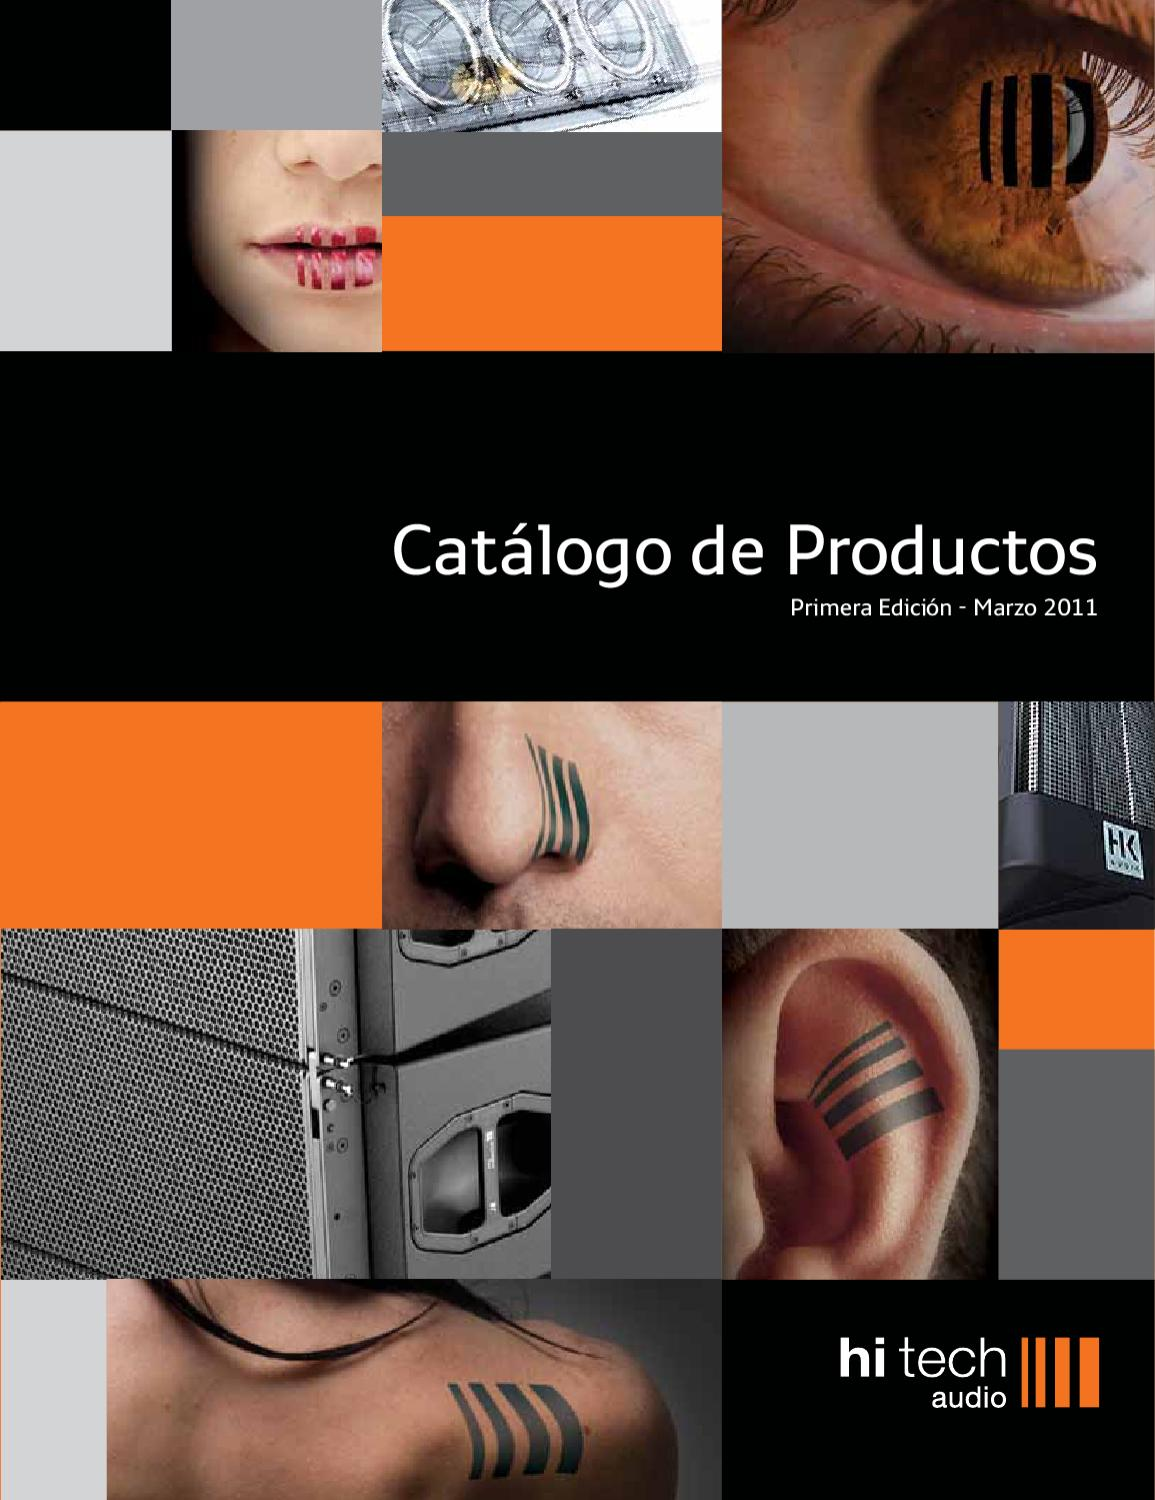 hitech audio catalogo by hi tech audio issuu. Black Bedroom Furniture Sets. Home Design Ideas